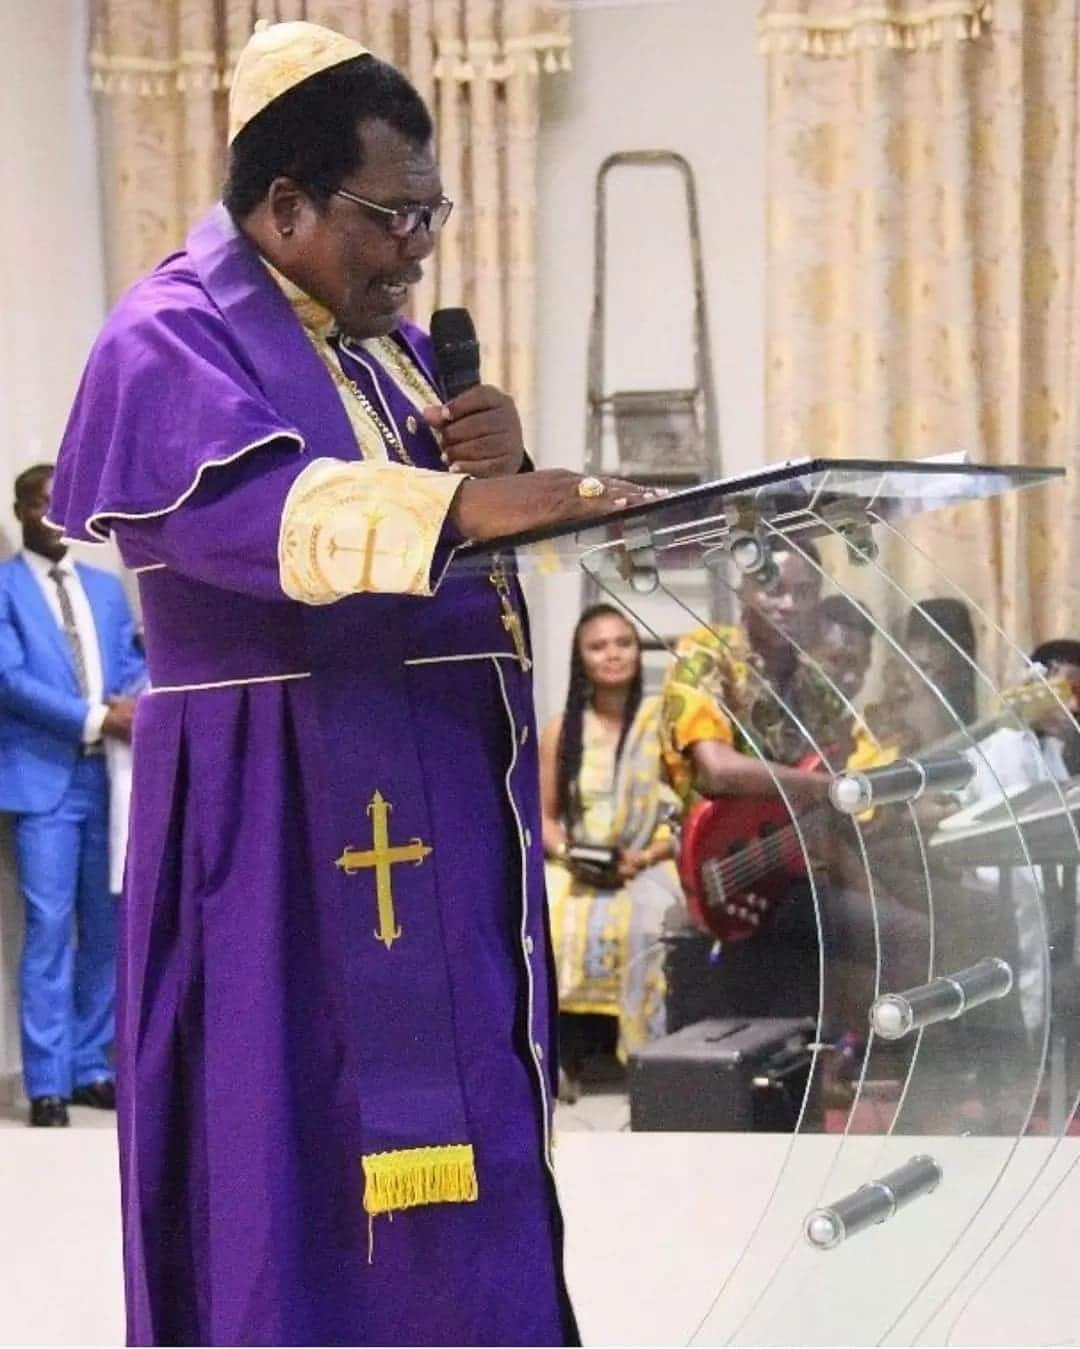 Papa Nii now an anglican priest?